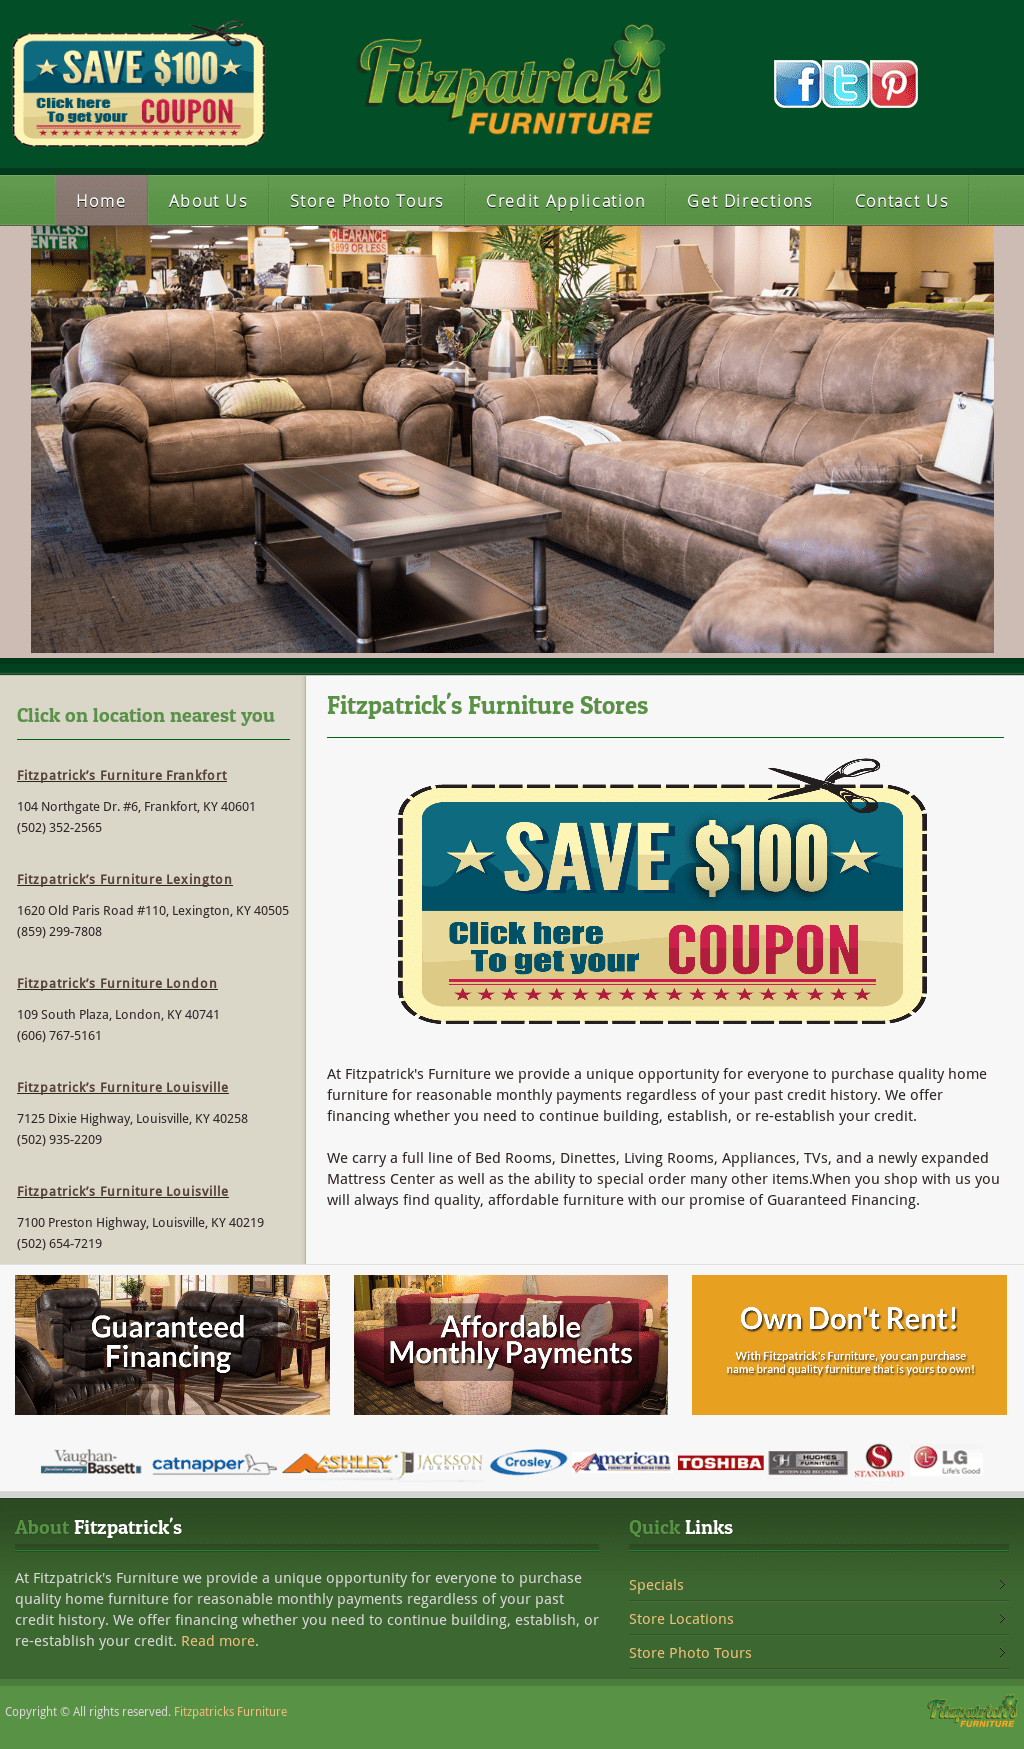 Fitzpatrick's Furniture in Lexington, KY 40505 - YellowBot